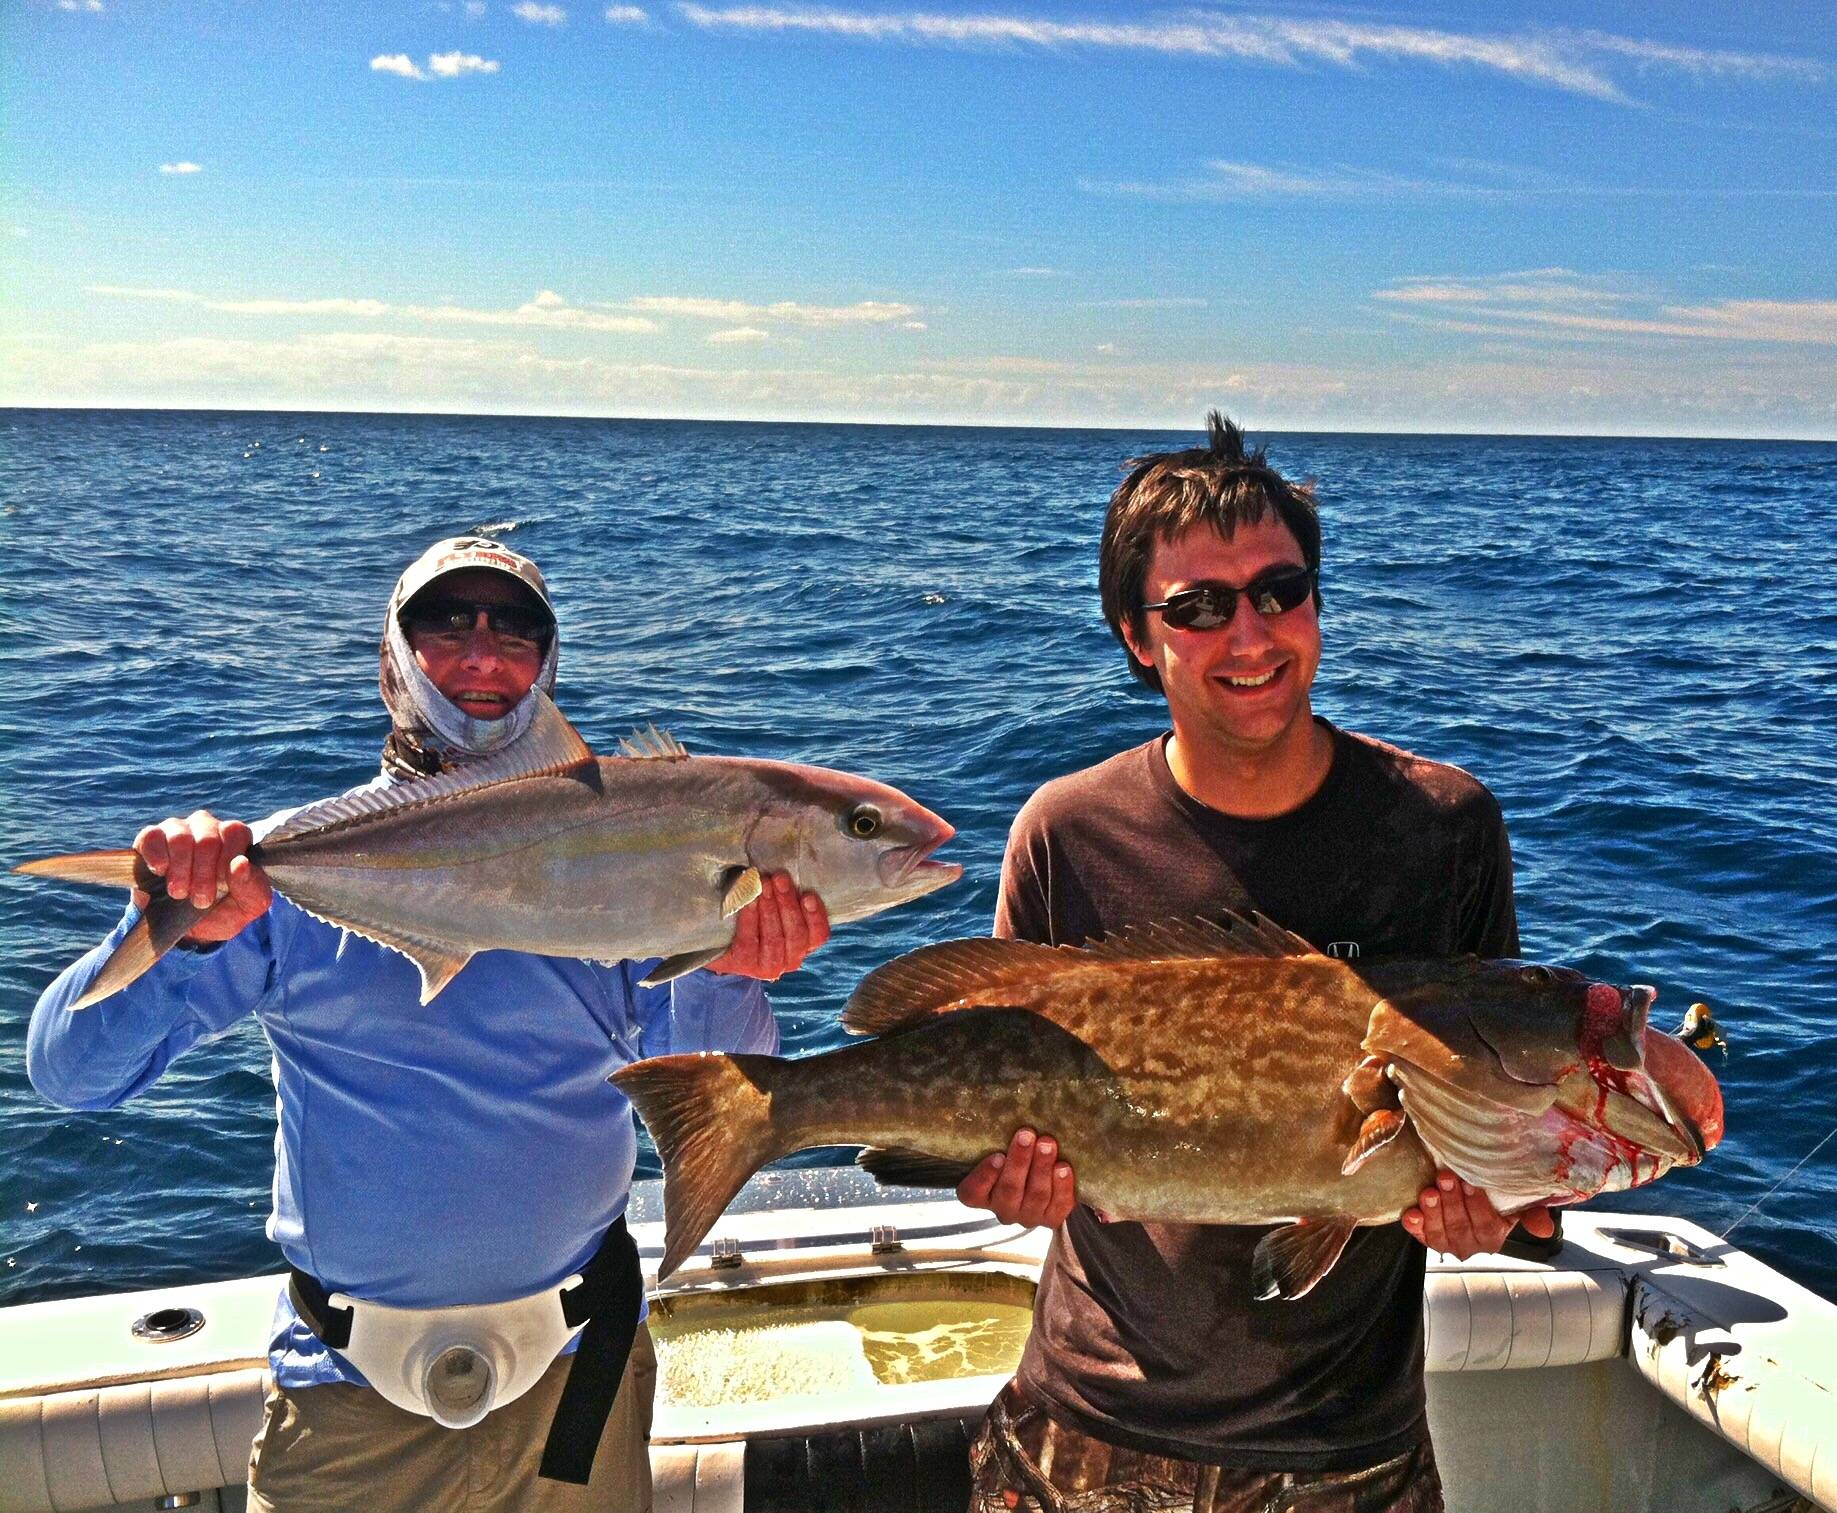 Port canaveral fishing report bloodydecks for Cape canaveral fishing report